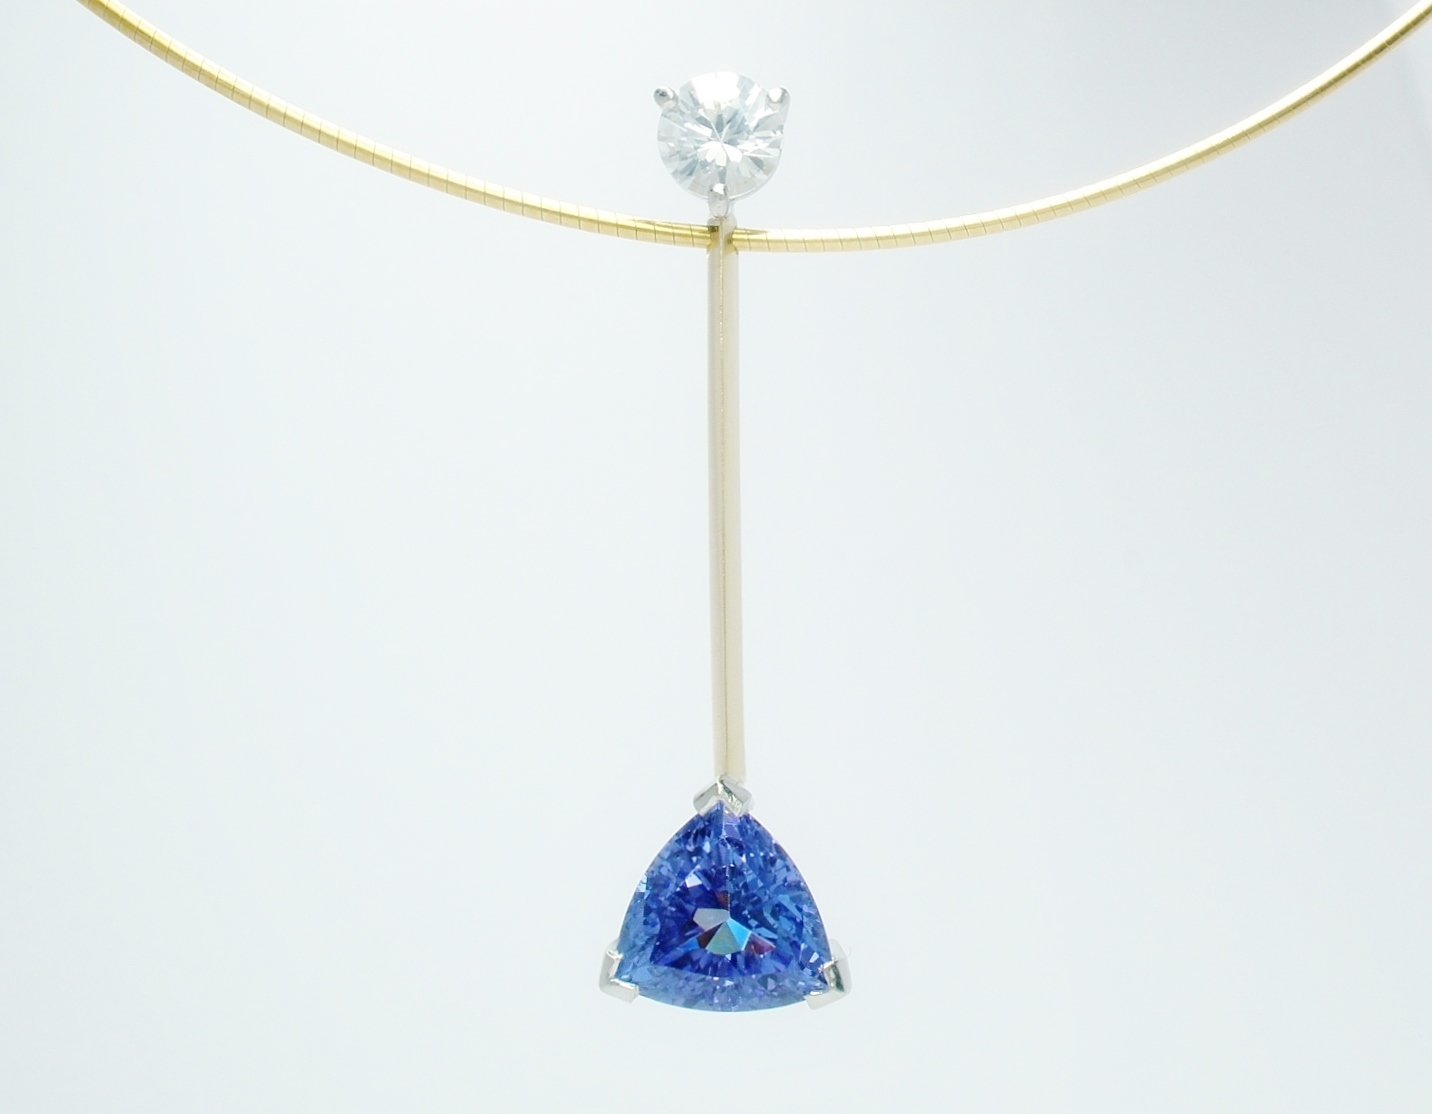 A 2 stone trilliant tanzanite and round brilliant cut diamond pendulum style pendant mounted in 18ct. yellow gold & platinum.